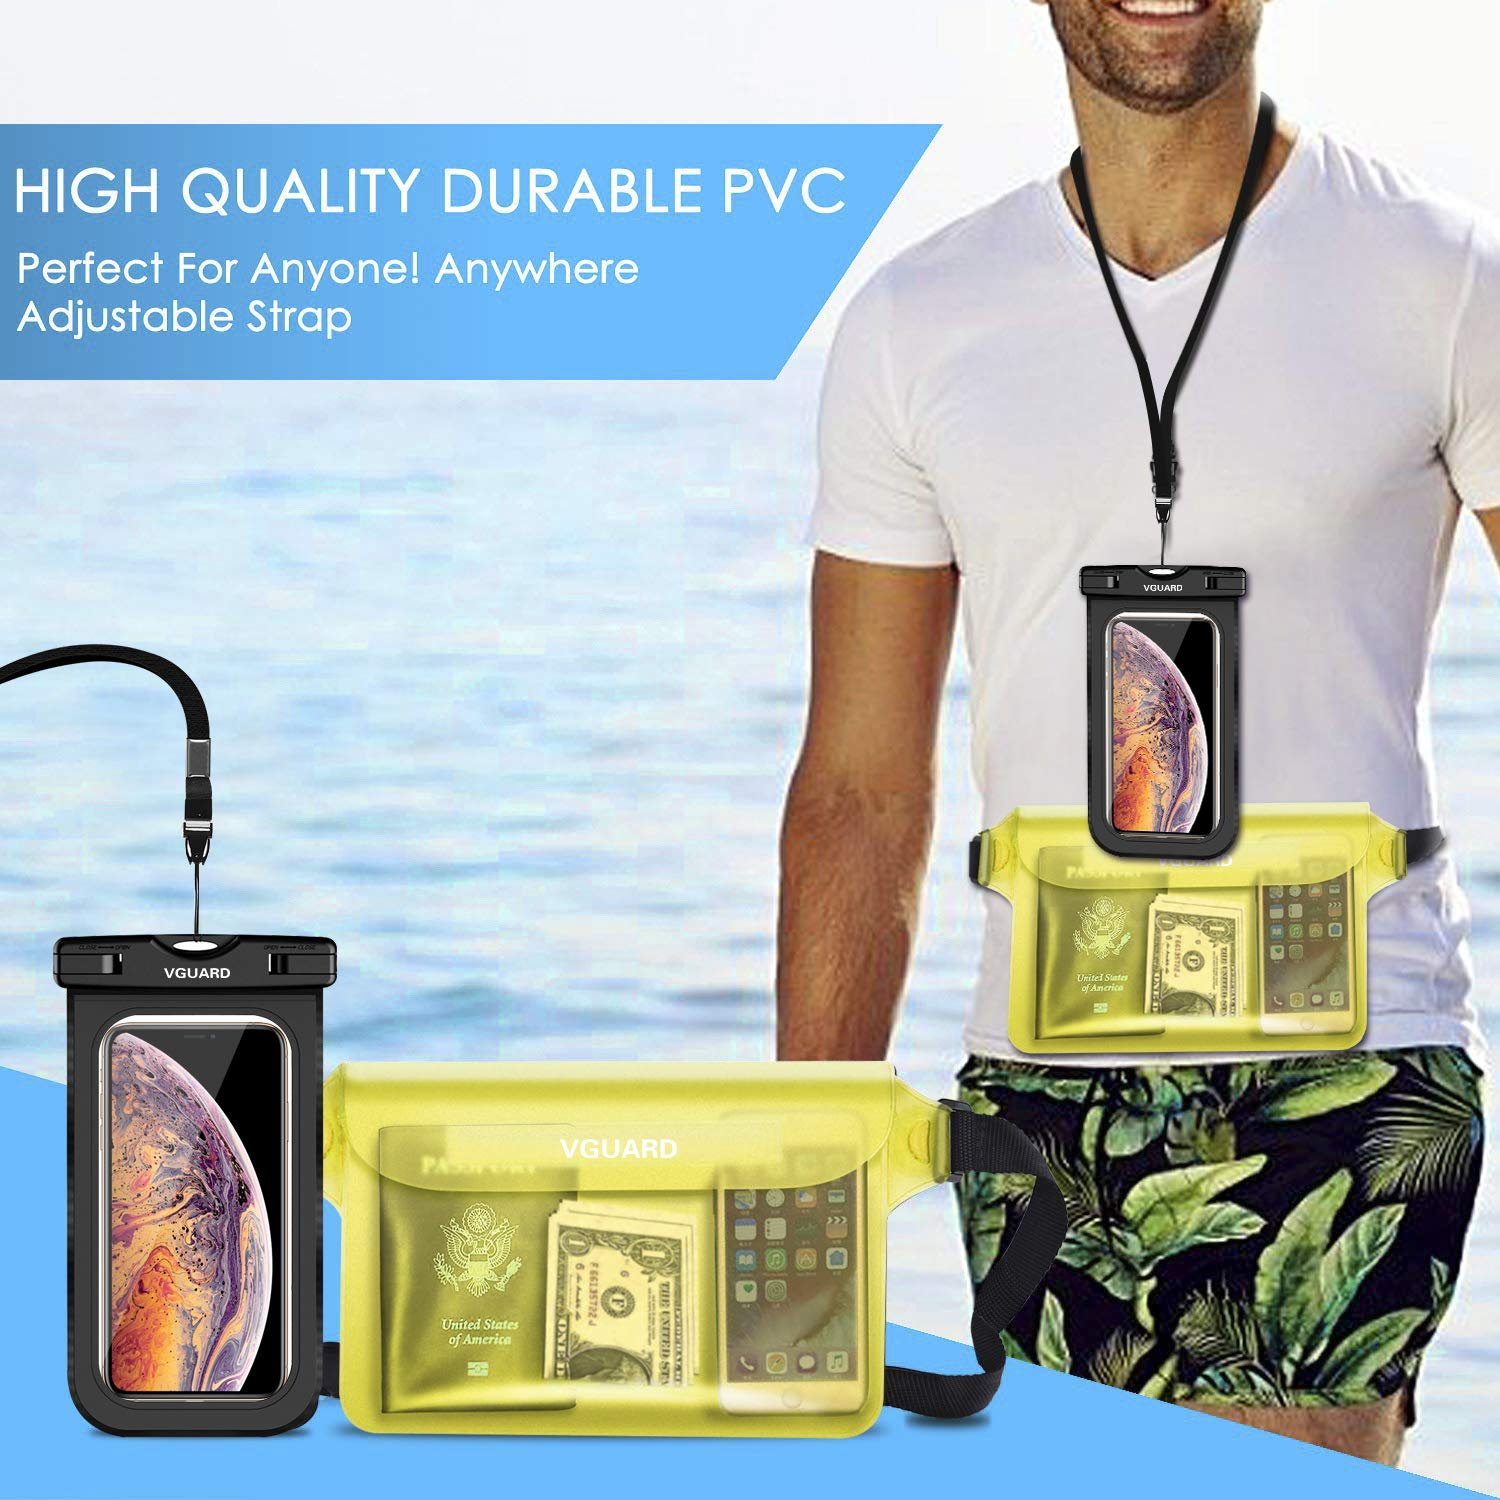 Sand Cash,Passport VGUARD Waterproof Pouch Bag Snow Waterproof Case Dry Bag for Beach,Swim,Boating,Kayaking,Hiking,Protects Iphone Phone Dust and Dirt. Camera Phone Case Document from Water